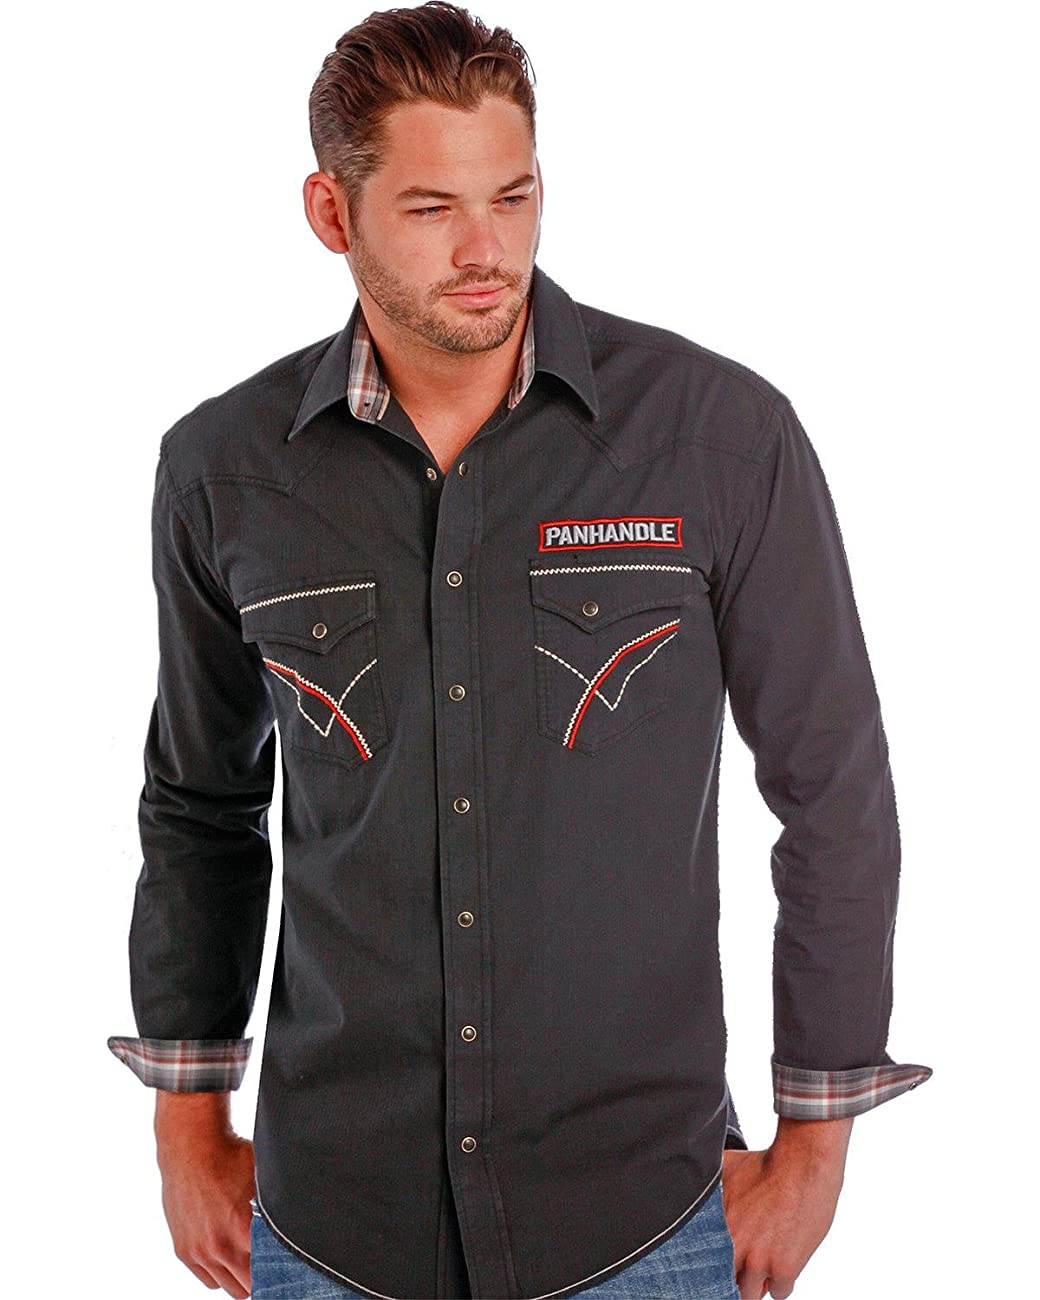 Panhandle Slim Men's Rough Stock By Vintage Bull Rider Logo Western Shirt - R0f9267-01 2